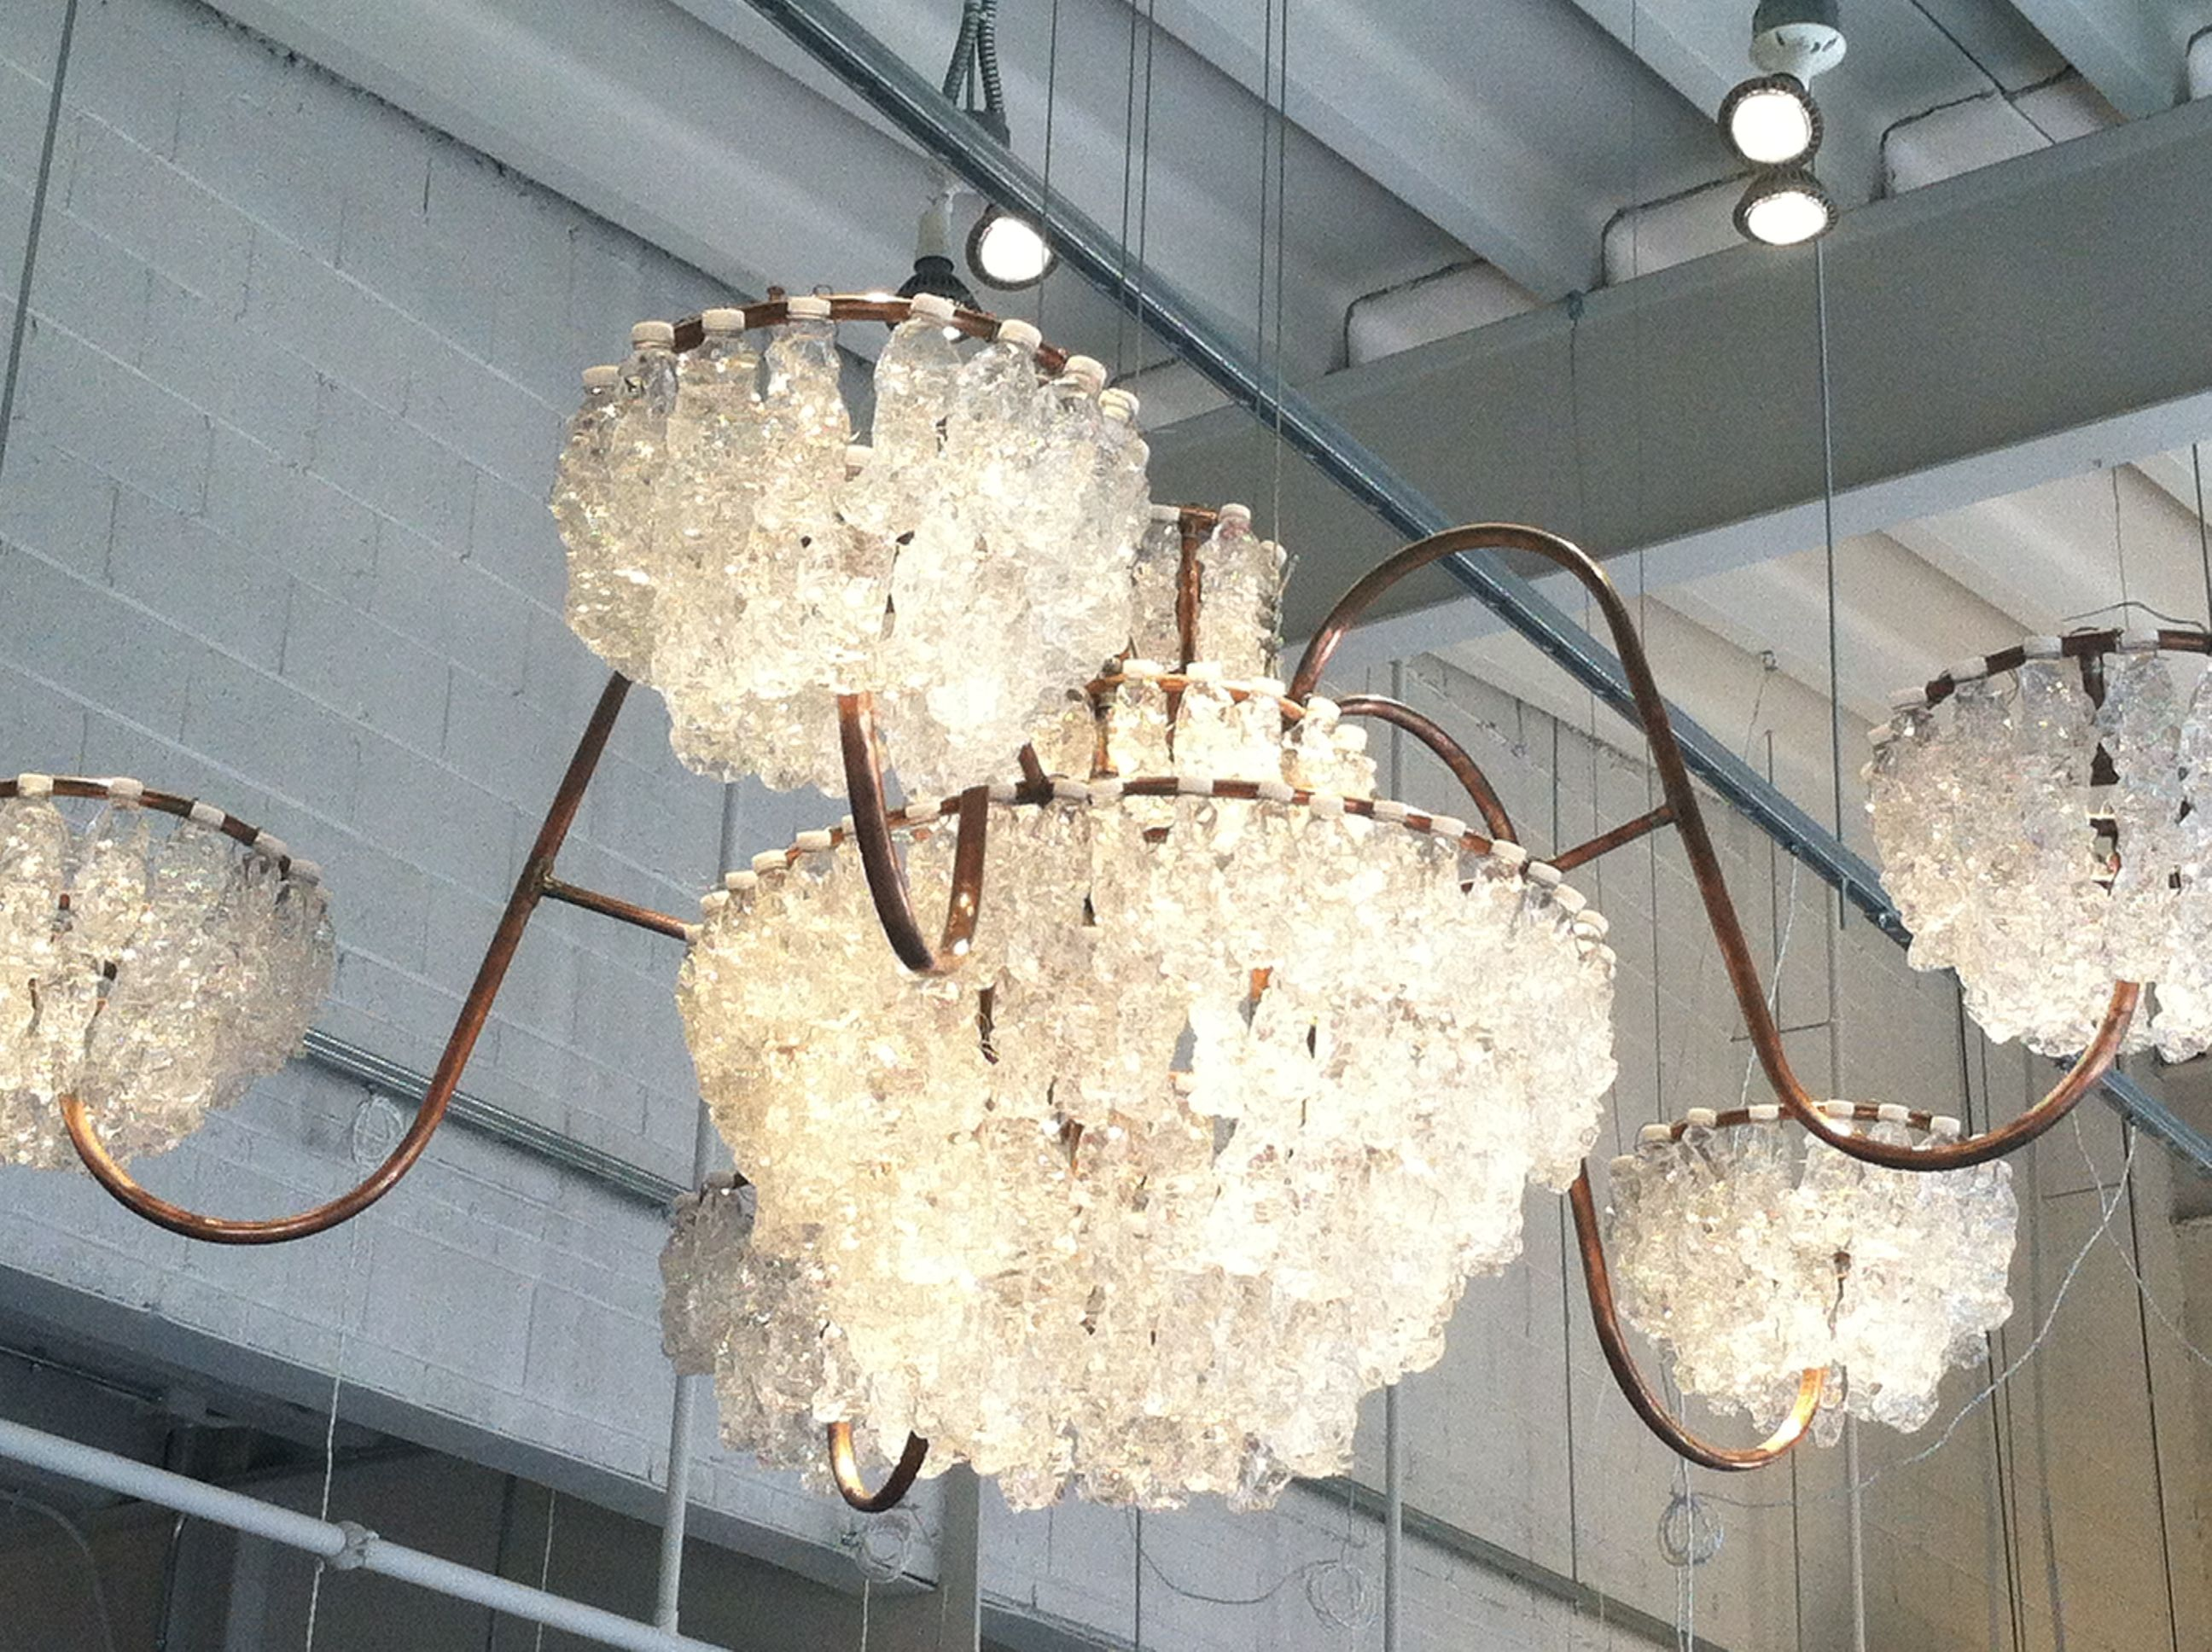 Recycled plastic water bottle chandelier in Union